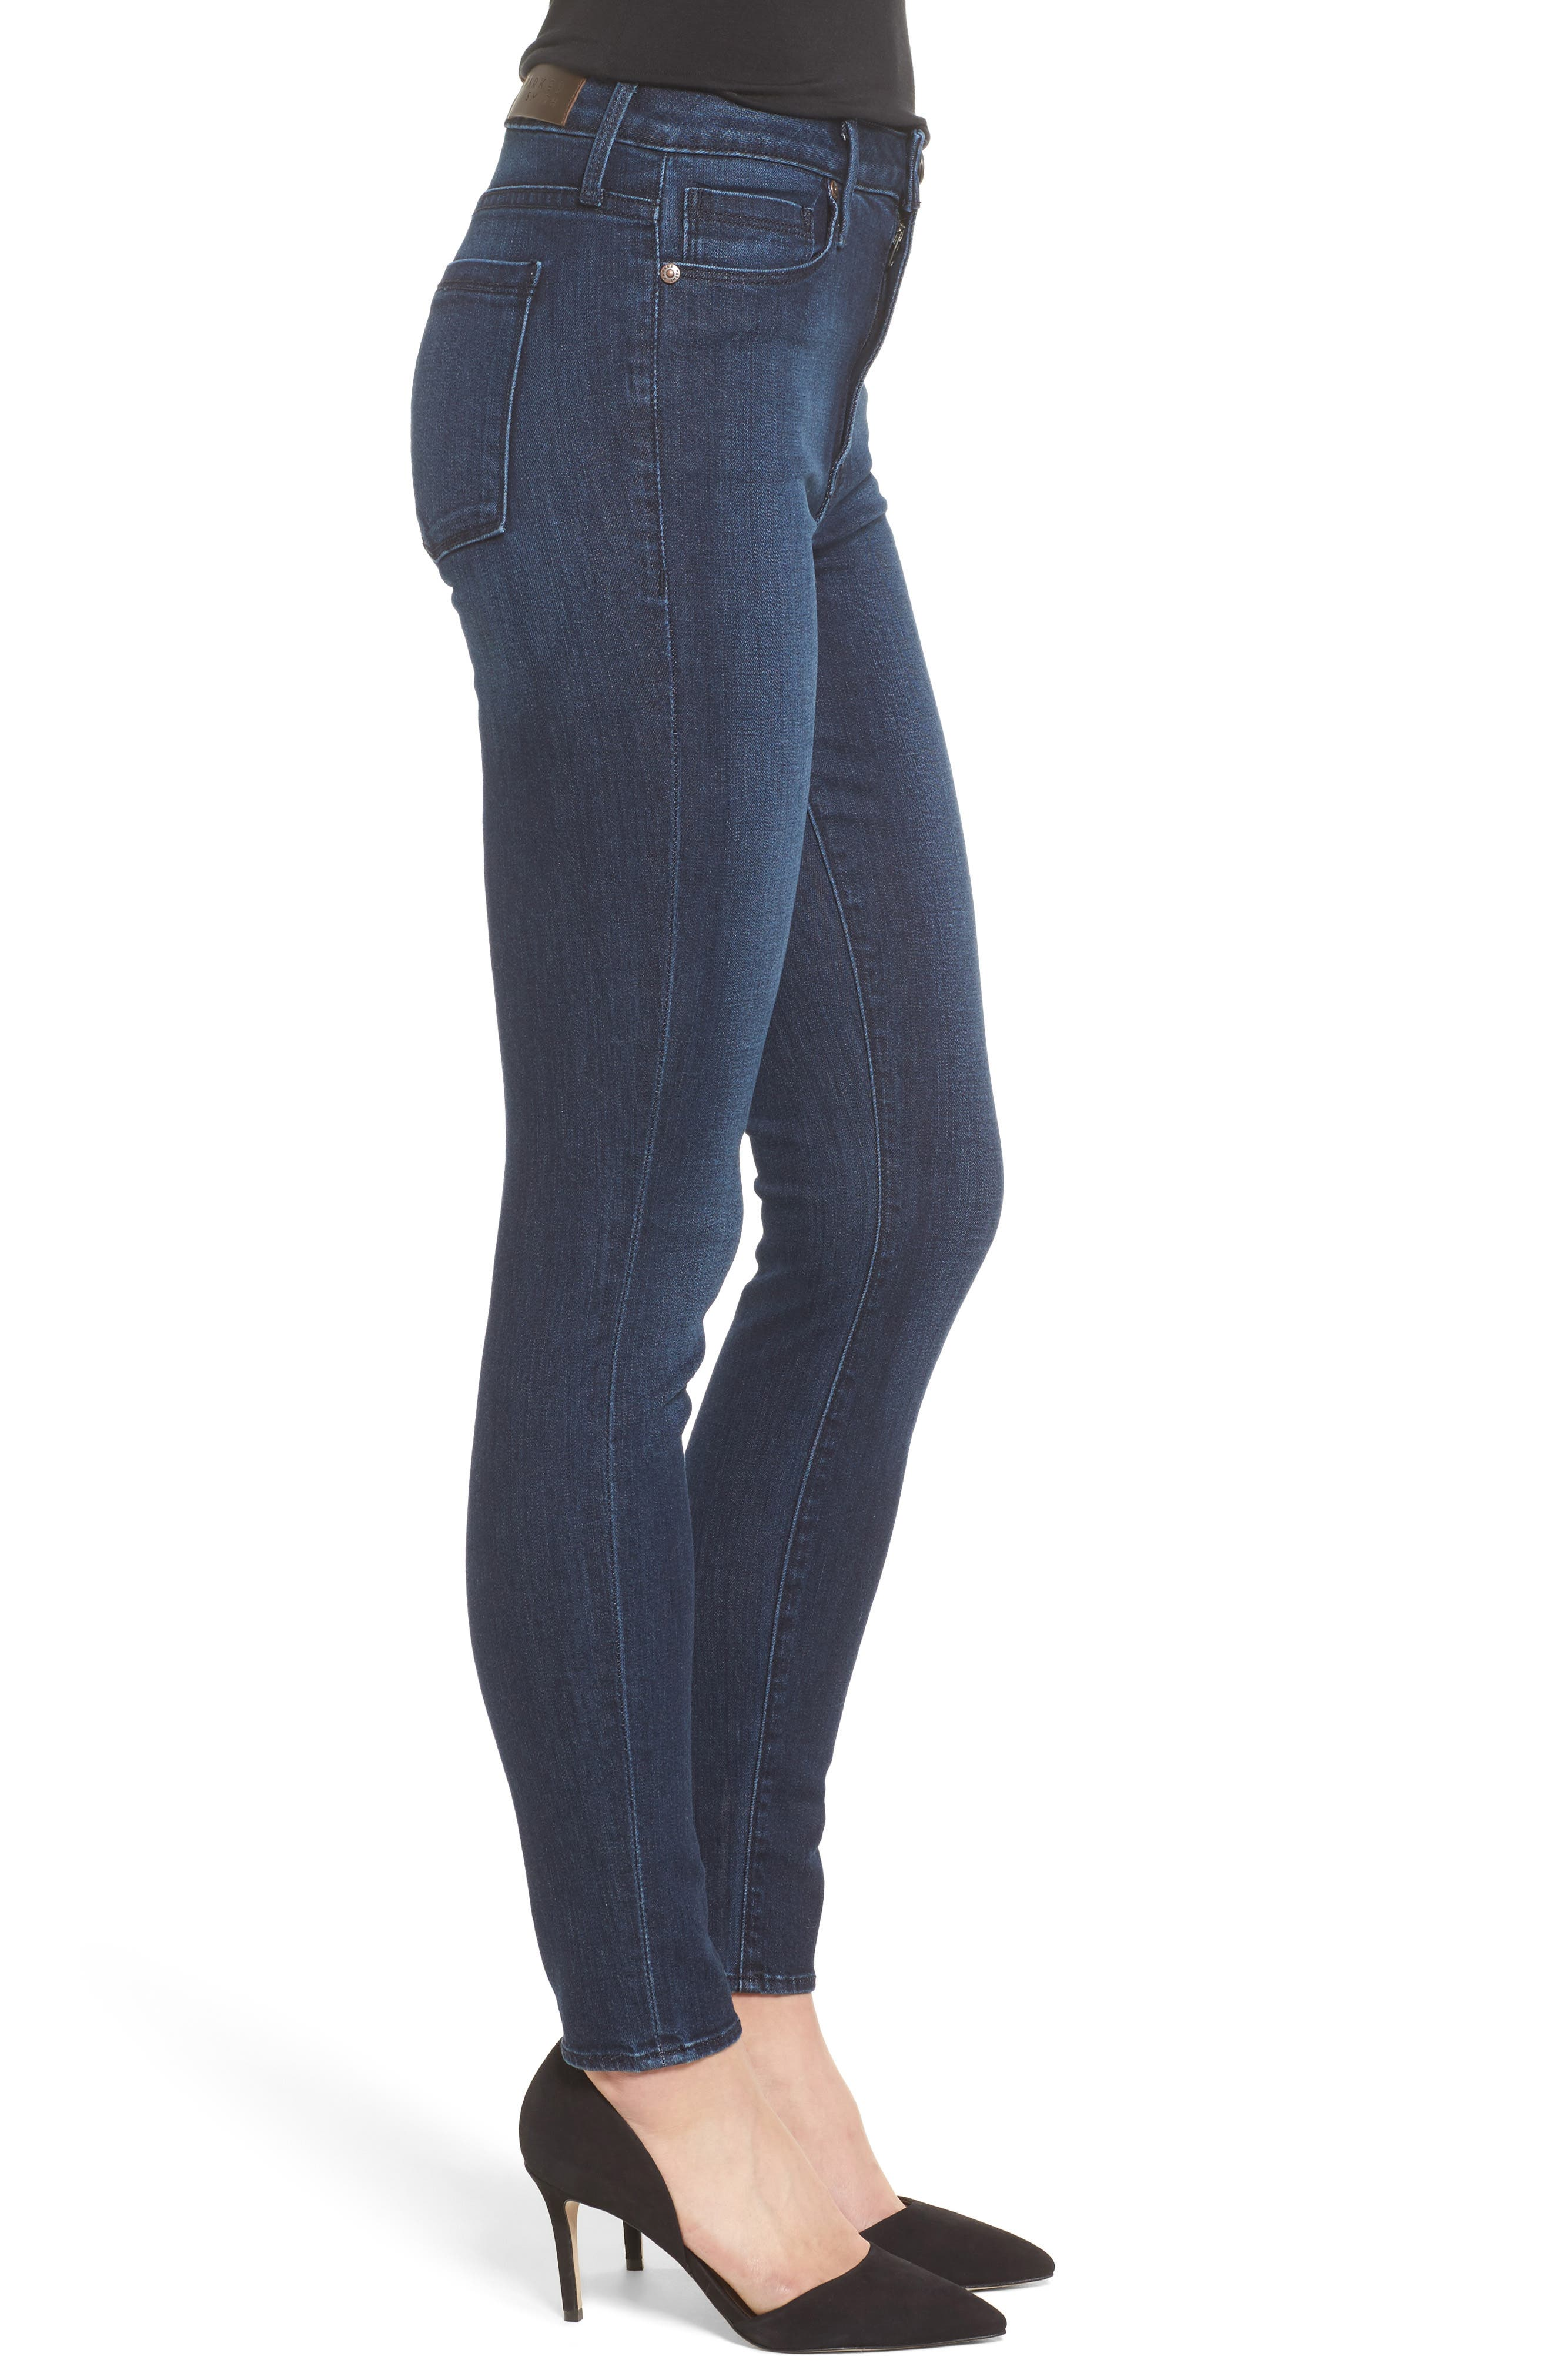 Bombshell High Waist Stretch Skinny Jeans,                             Alternate thumbnail 3, color,                             Stellers Jay